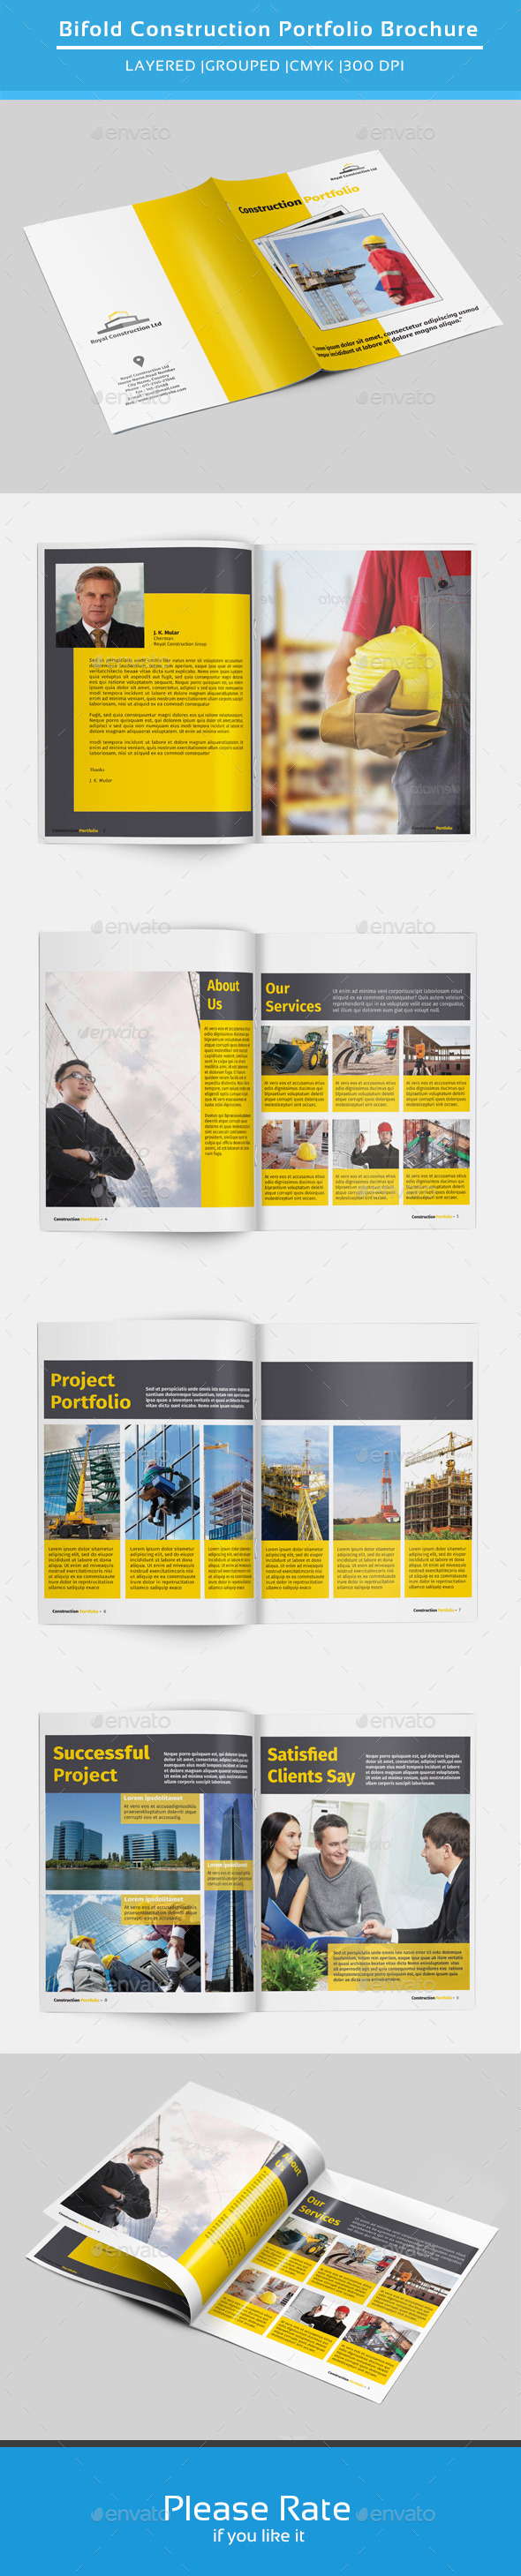 GraphicRiver Bifold Brochure for Construction-V141 9066691